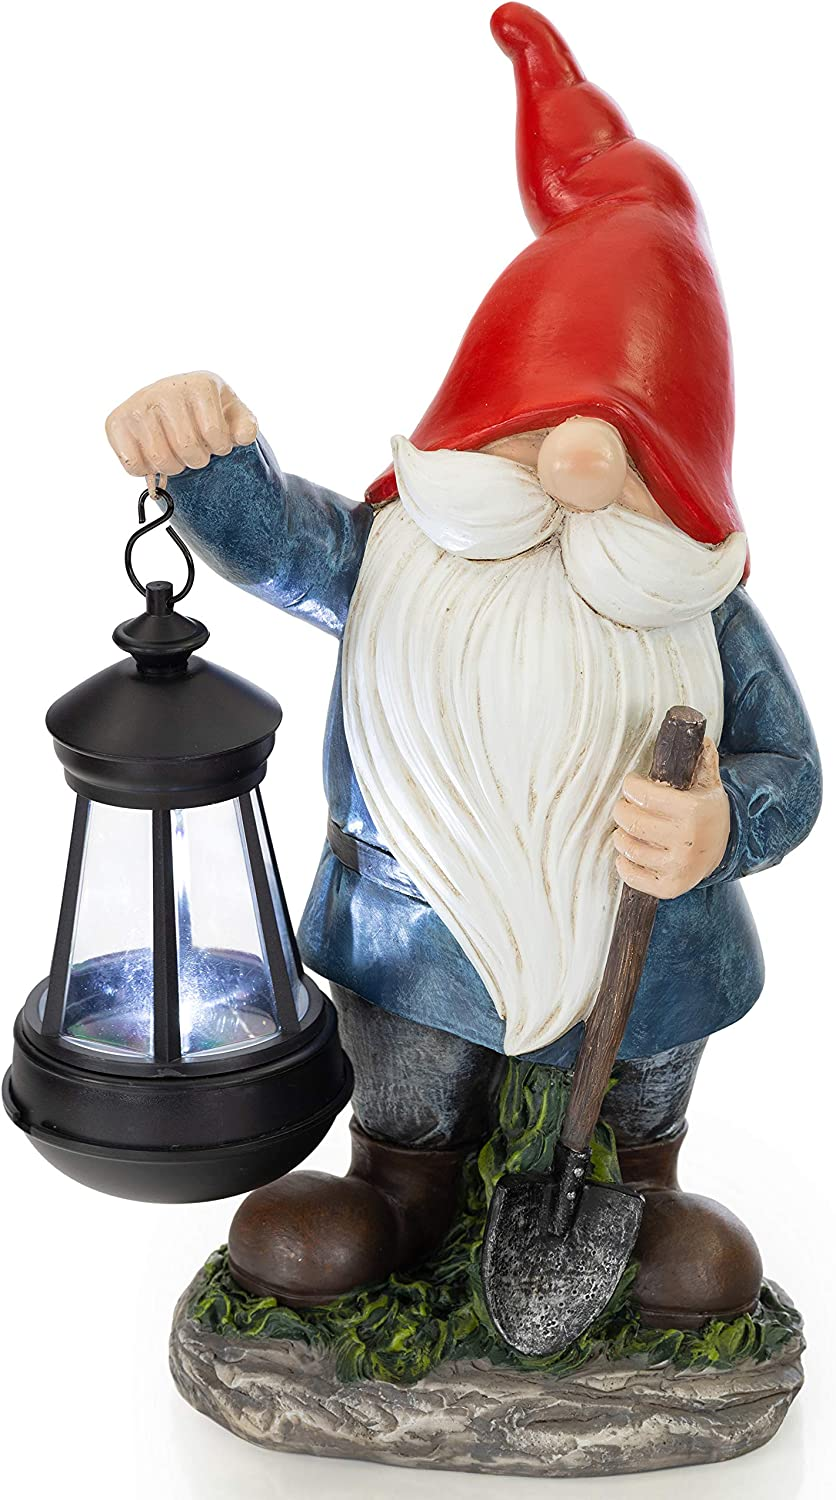 VP Home Earnest Garden Gnome with Lantern Solar Powered LED Outdoor Decor Light (Red Hat)